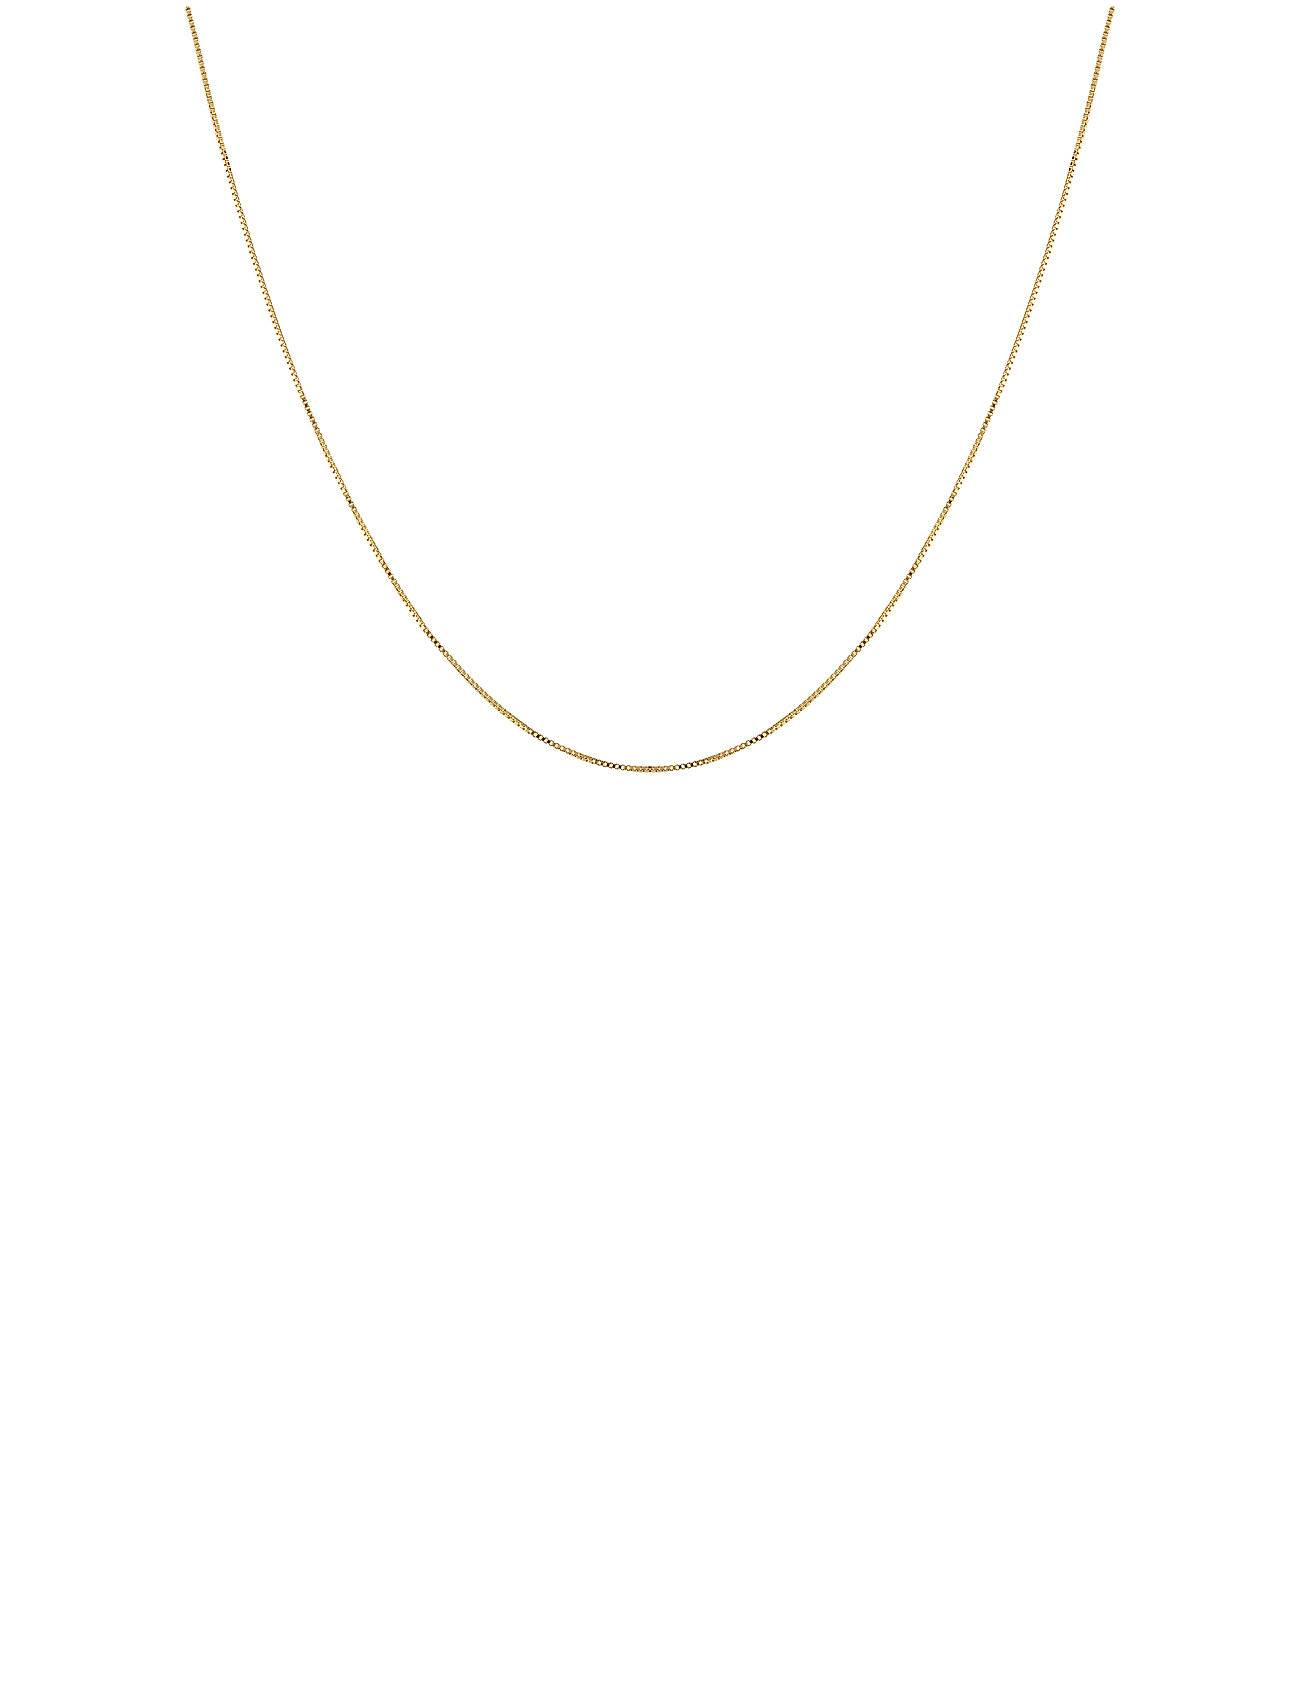 Syster P Beloved Long Box Chain Gold Accessories Jewellery Necklaces Dainty Necklaces Kulta Syster P